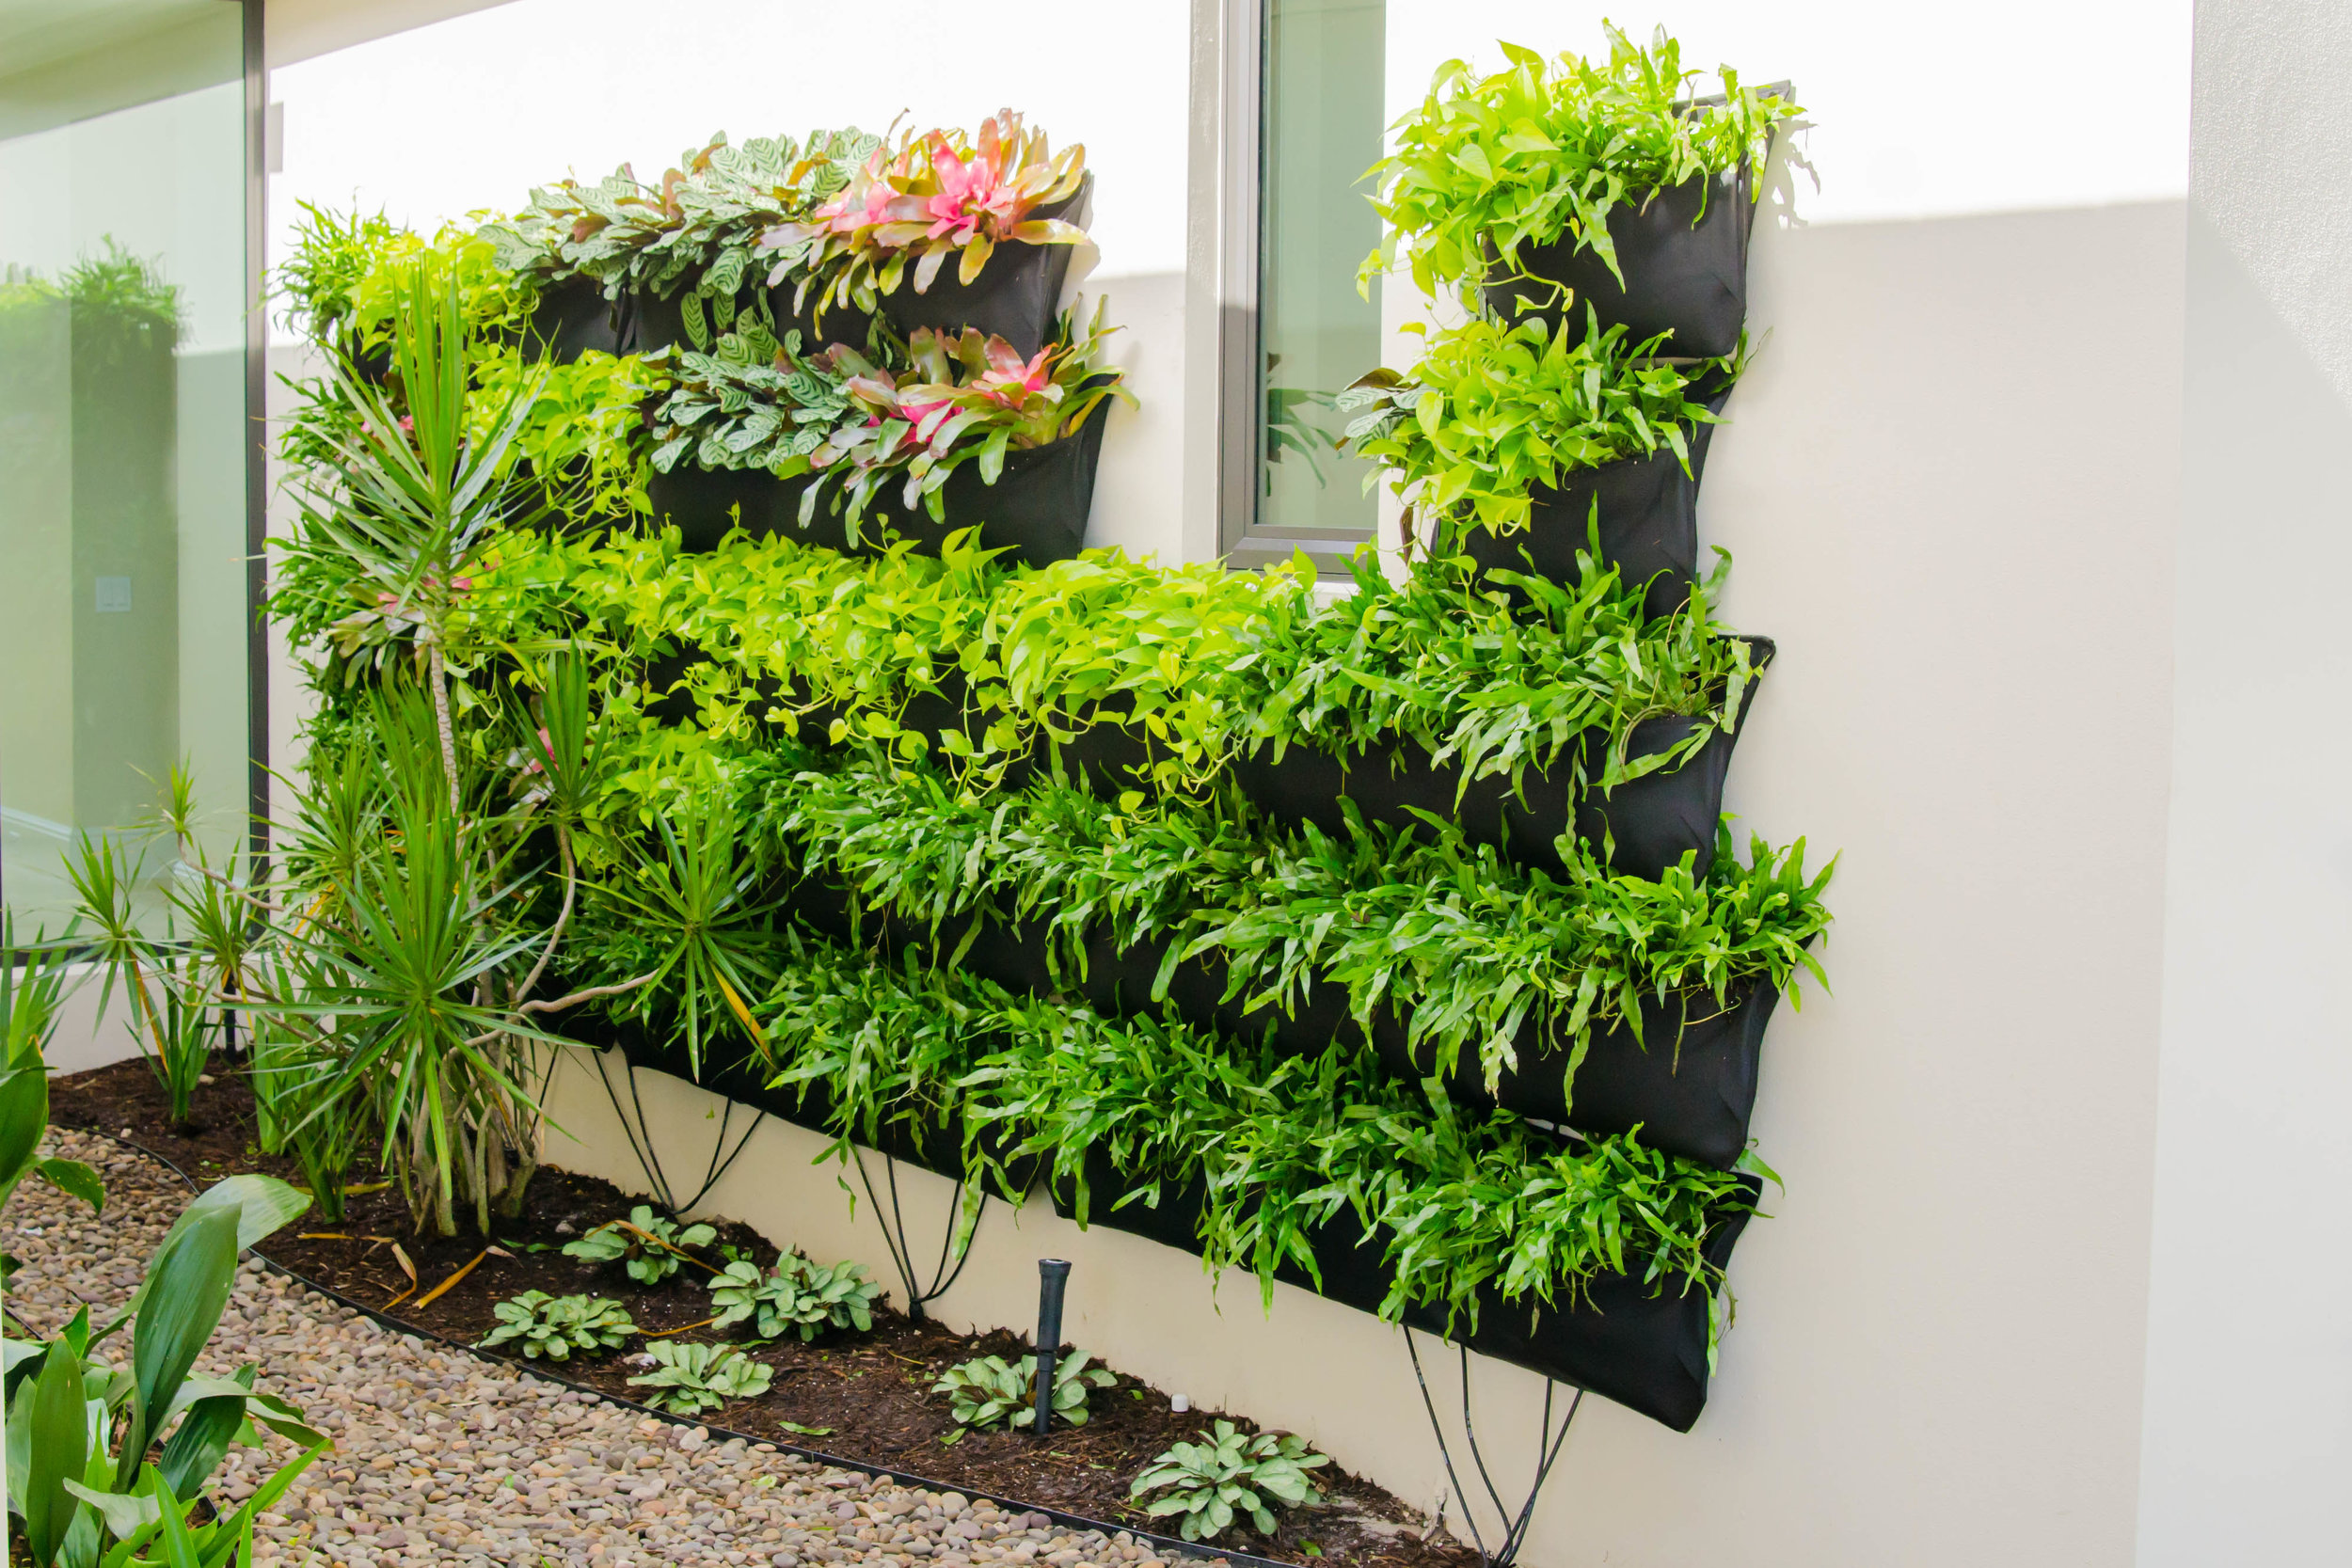 Living walls are an up and coming trend.